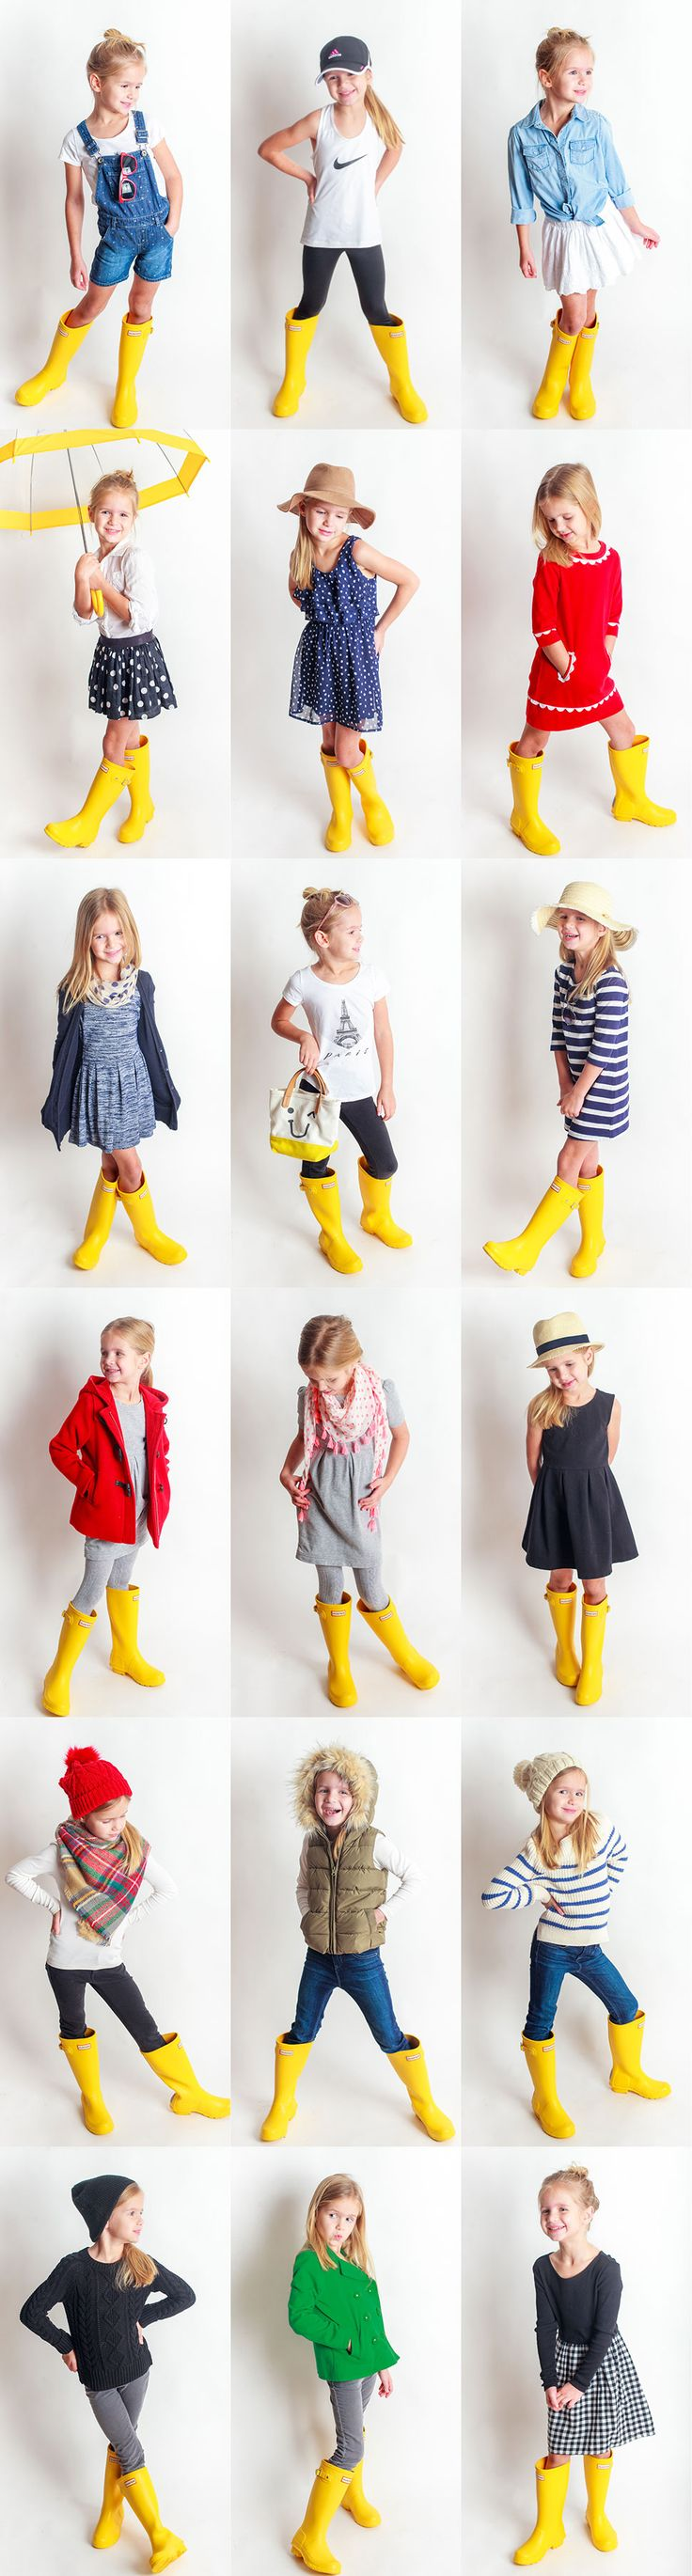 Yellow Rain Boots Project! 18 Outfits with one pair of yellow rain boots!